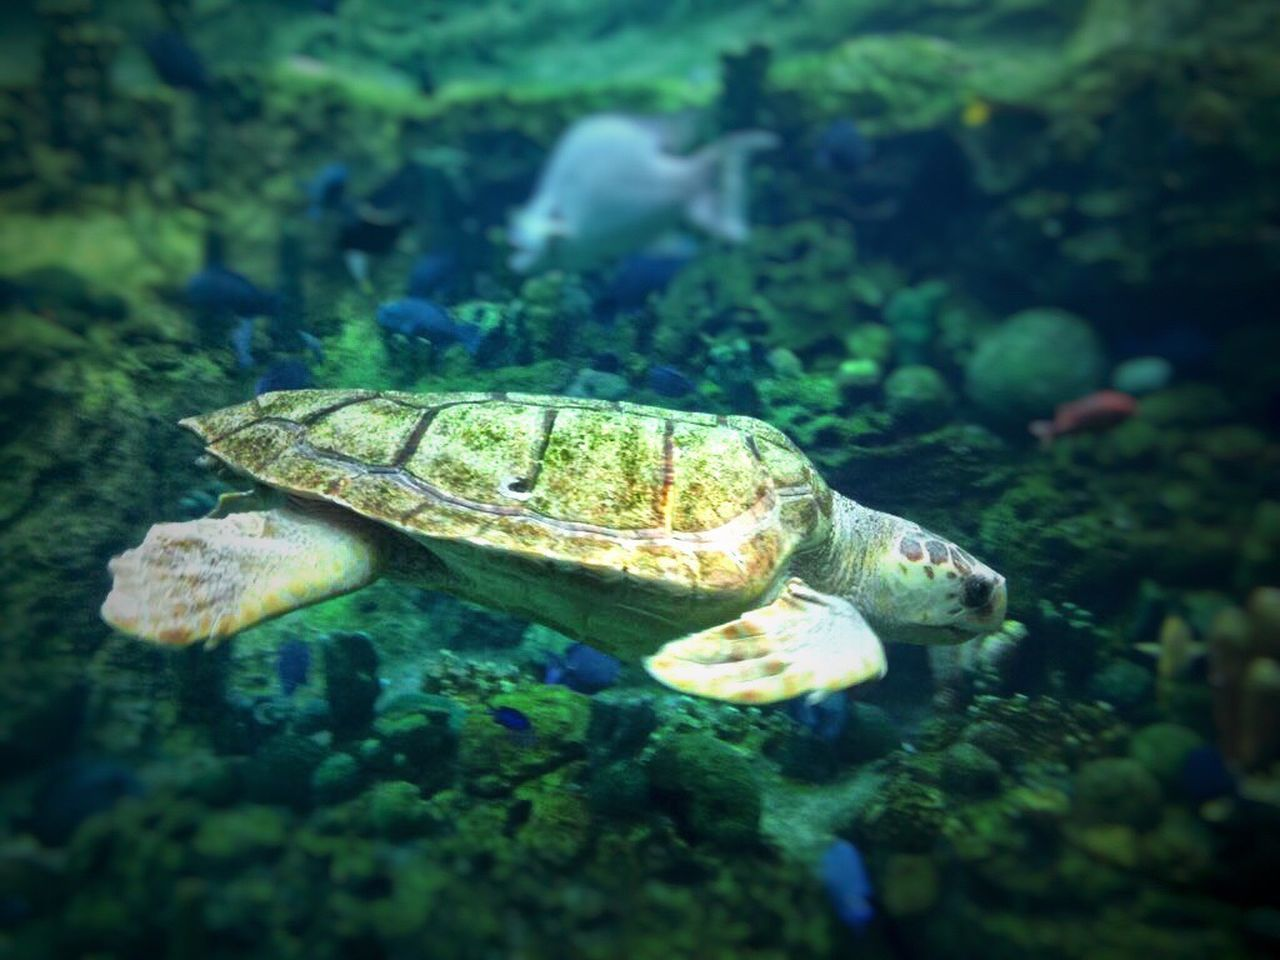 Turtle Caribbean Mexico Animal Themes Underwater Sea Life Reptile Swimming Animals In The Wild Tortoise Water Sea Turtle UnderSea Tortoise Shell Nature No People Day Outdoors Nature Tranquility EyeEm Beauty In Nature Fish Hot Day EyeEm Gallery